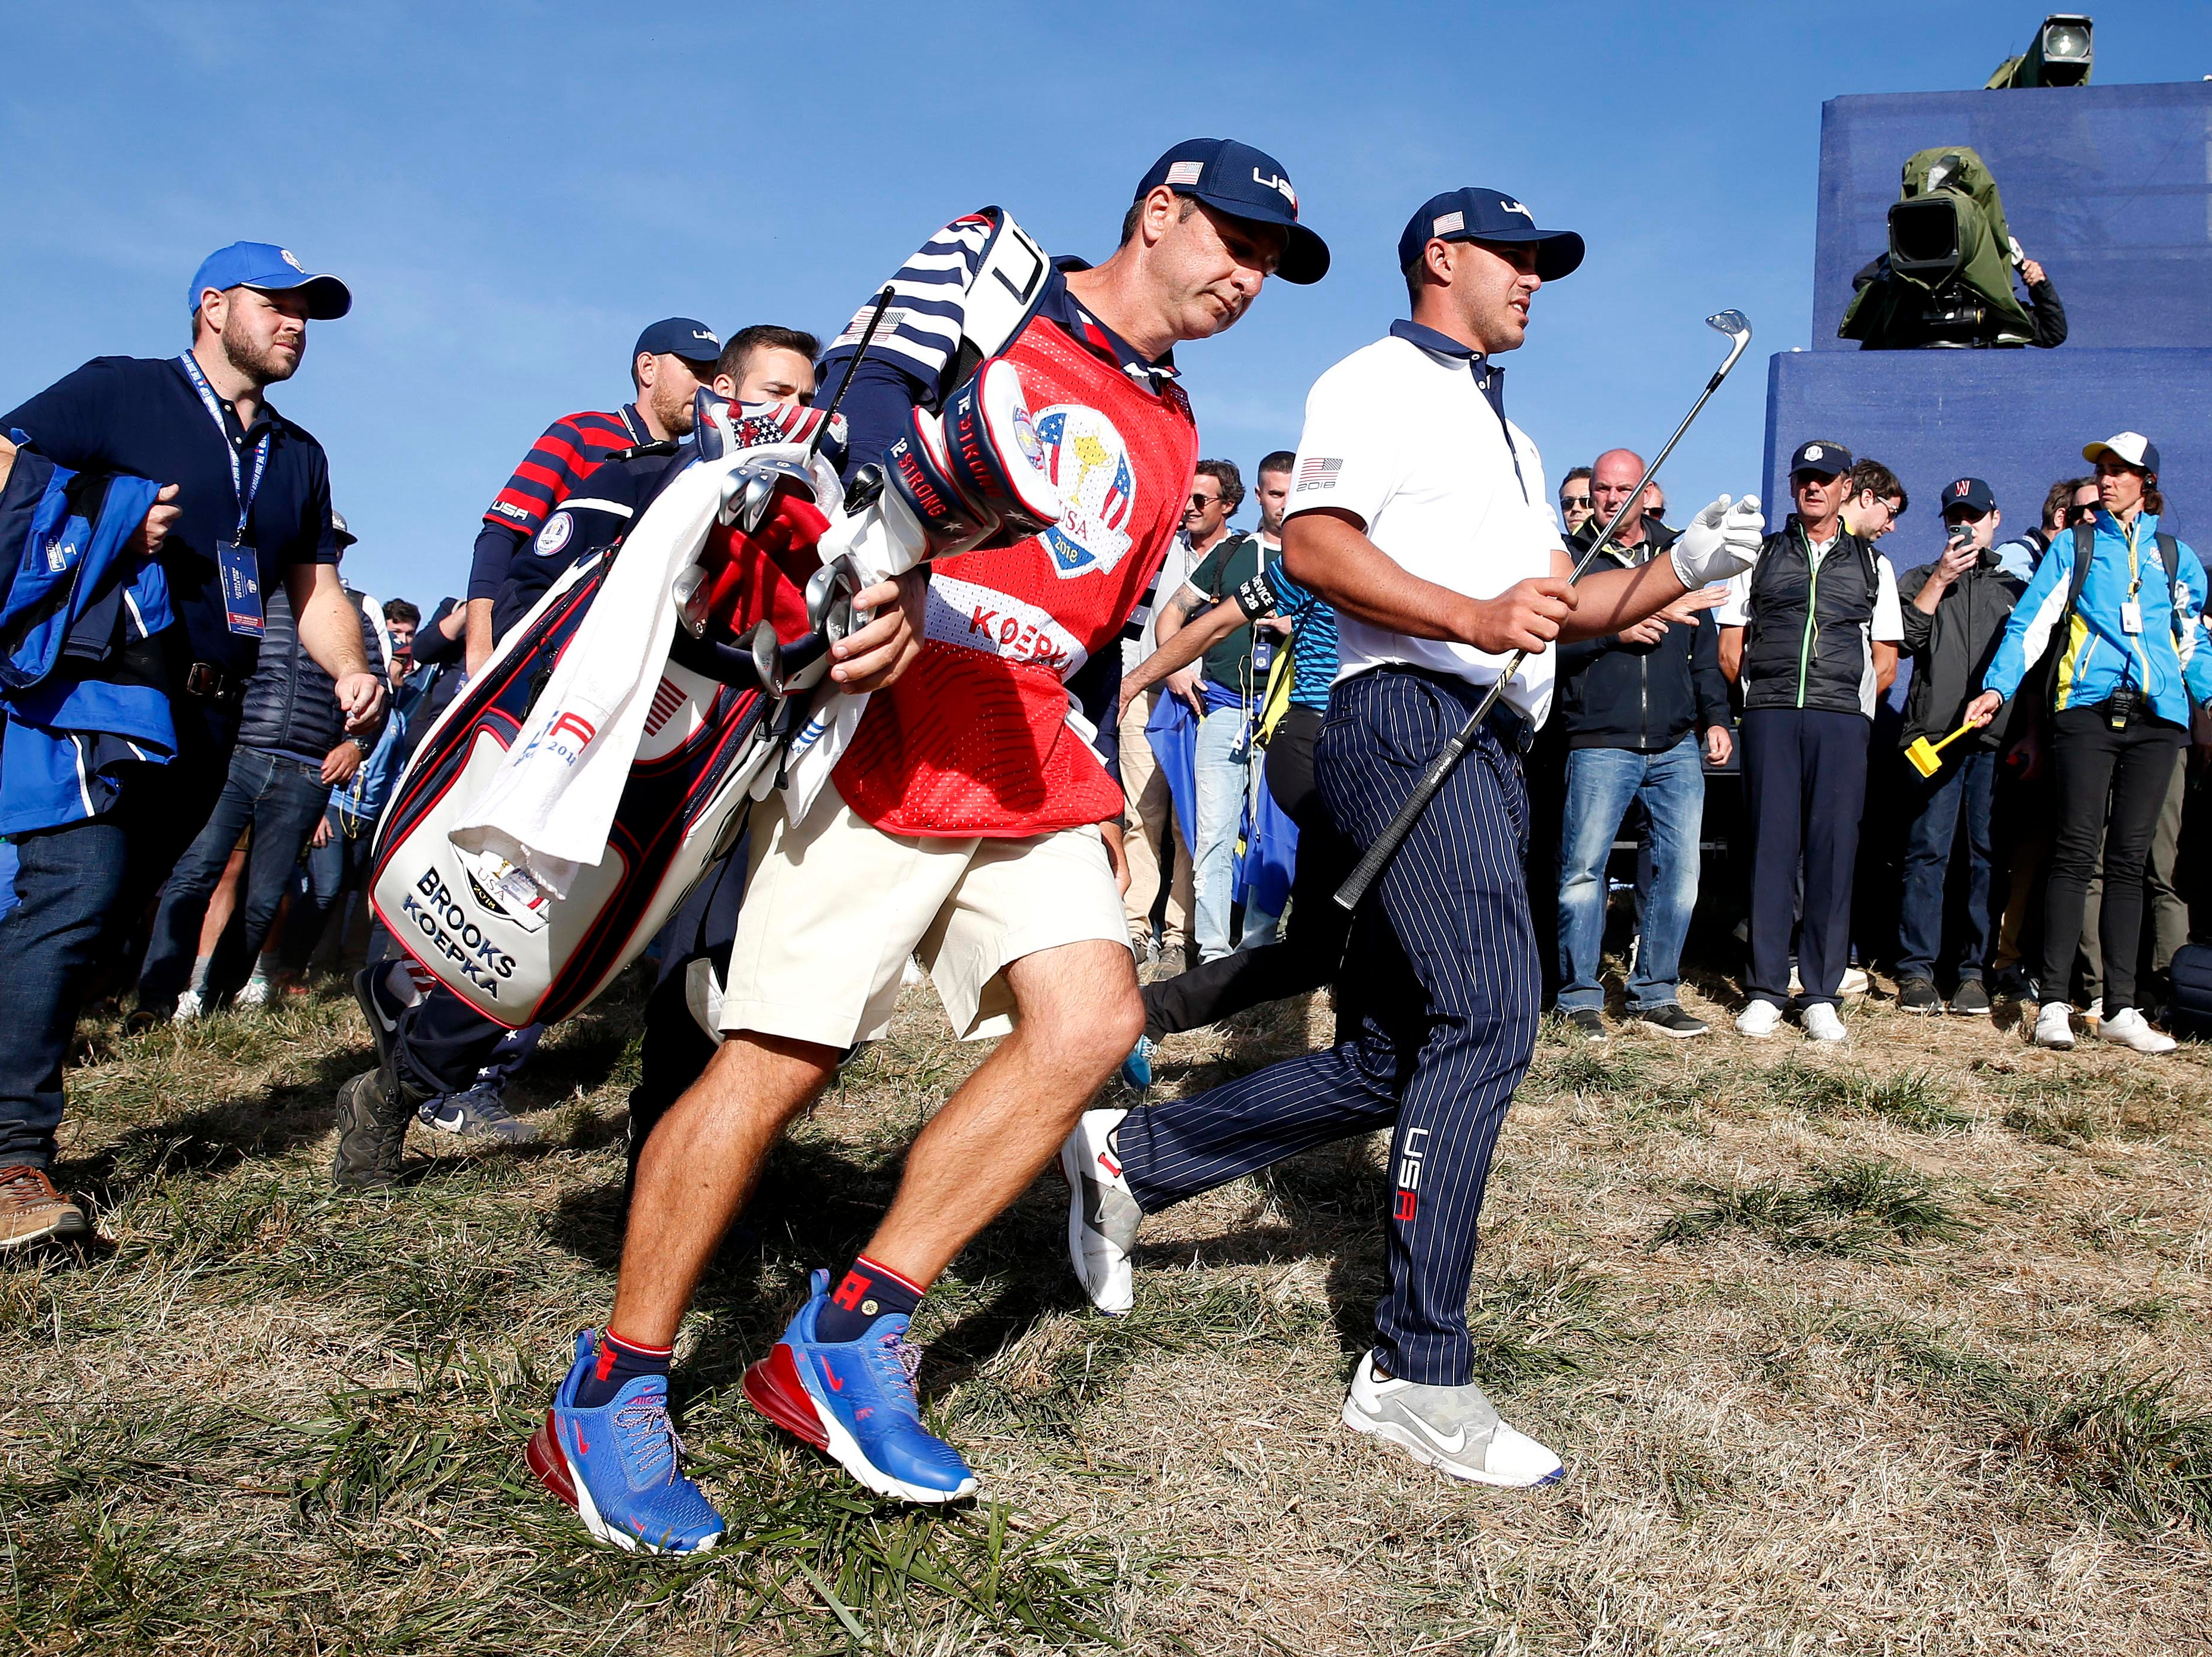 American Brook Koepka walks to the 17th hole during the Saturday afternoon matches.